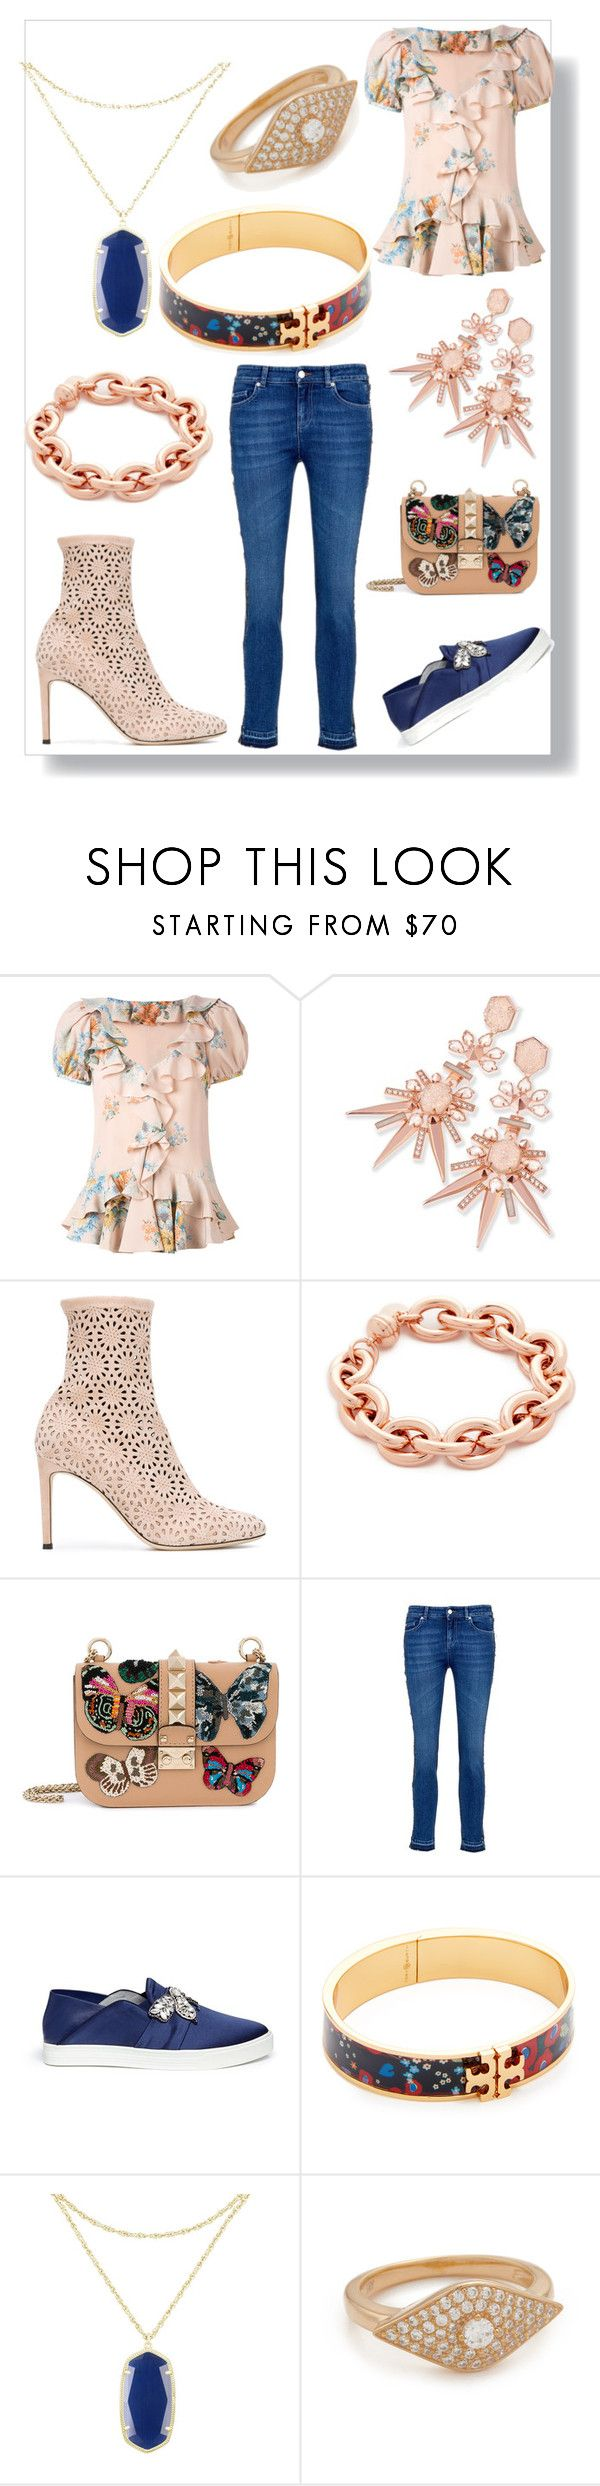 """Your Your Style"" by ramakumari on Polyvore featuring Alexander McQueen, Kendra Scott, Giuseppe Zanotti, Bronzallure, Valentino, Pedder Red, Tory Burch and Native Gem"